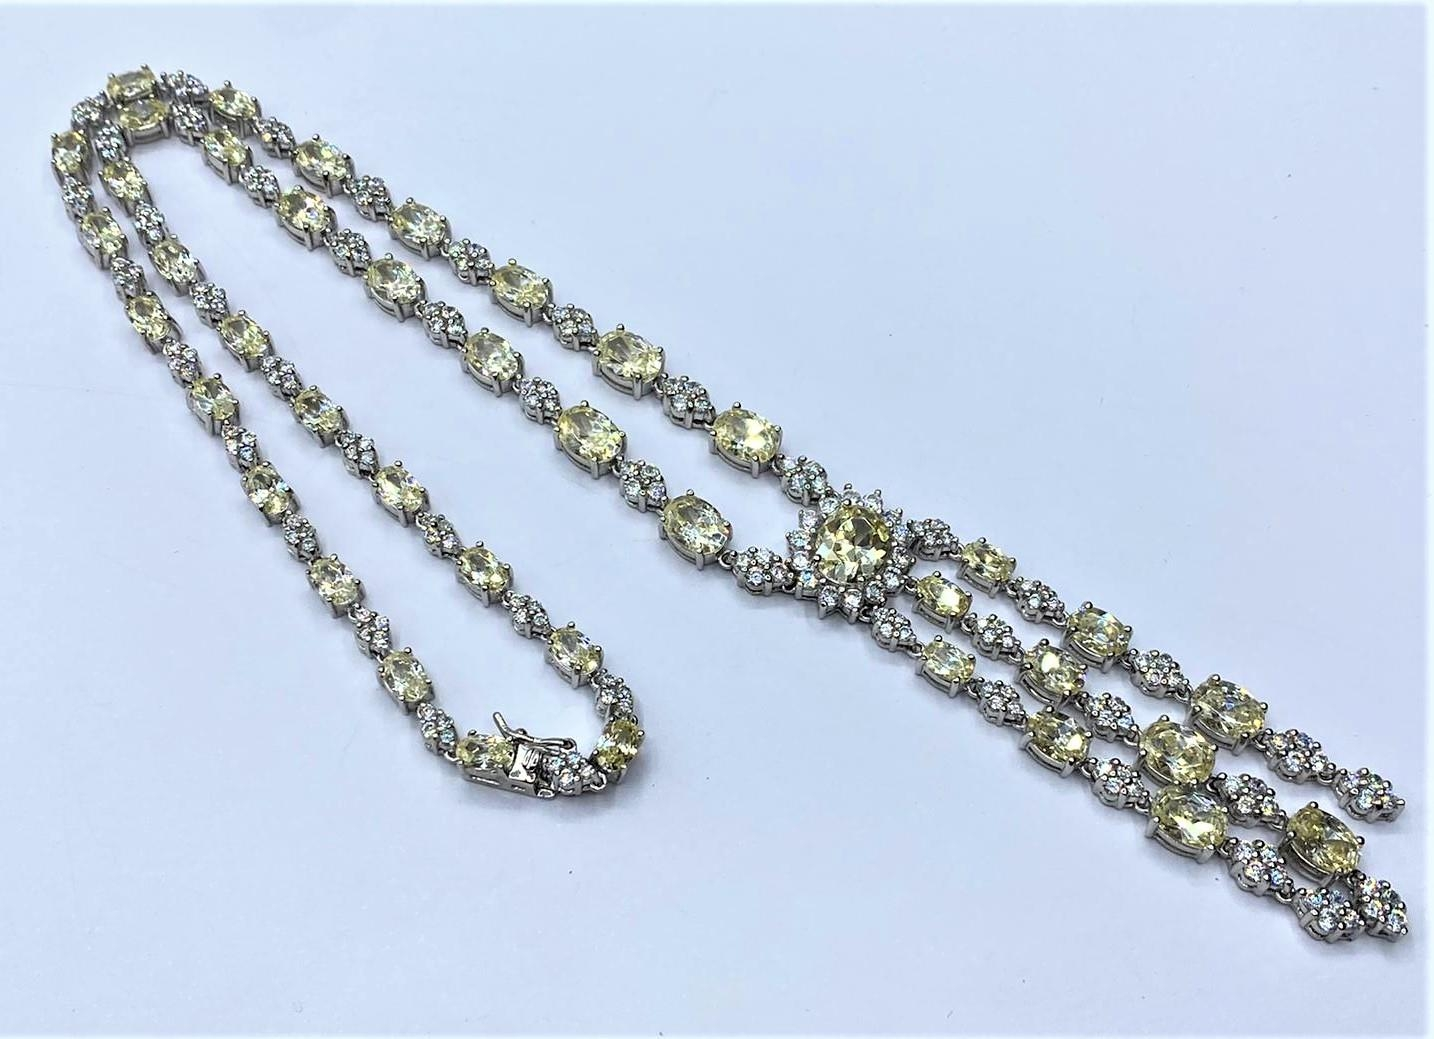 Silver heavy NECKLACE with white and yellow stones. 45.78g 40cm.